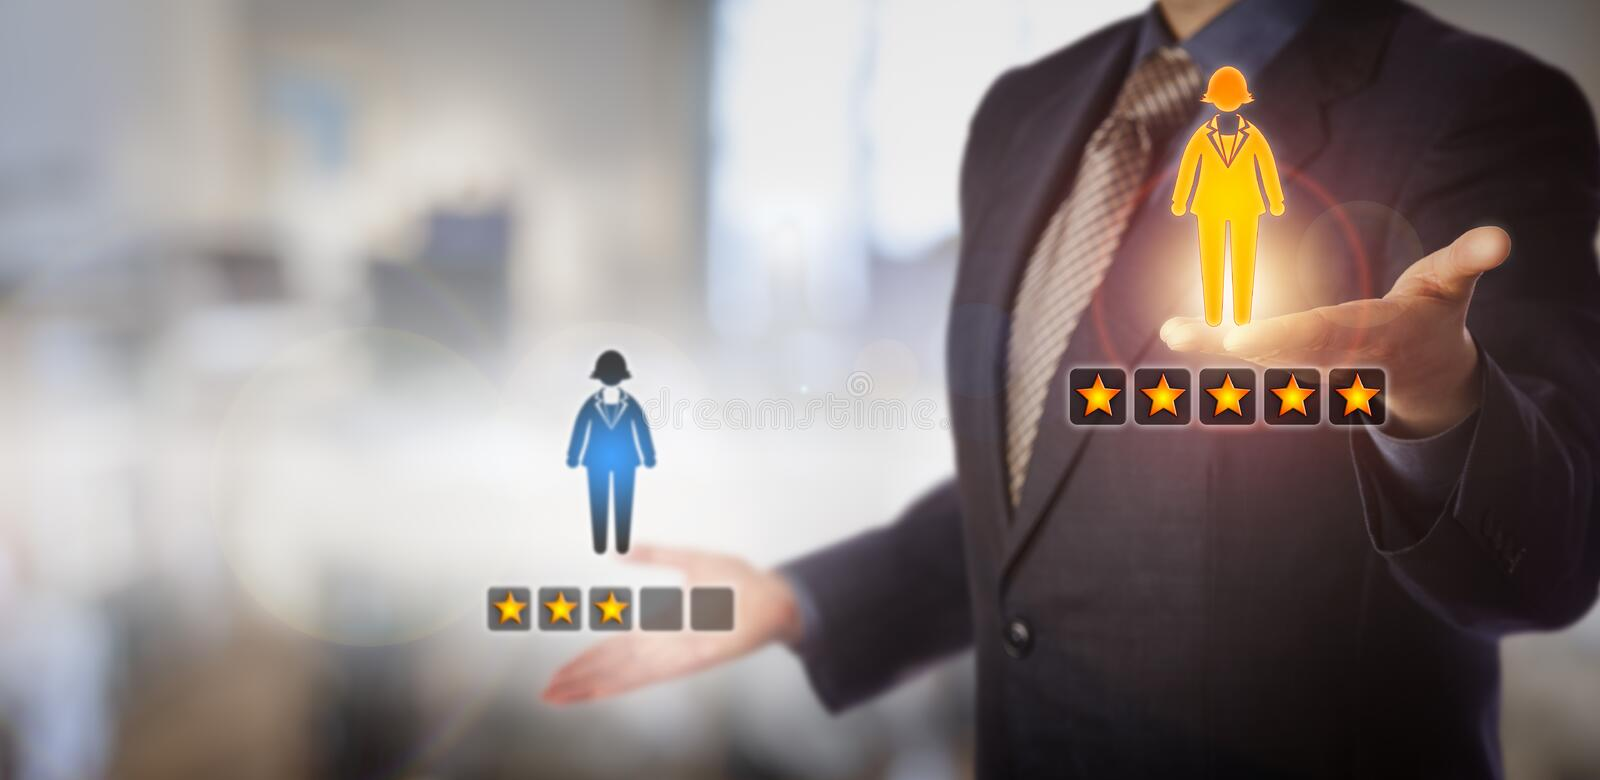 HR Manager Rating Two Female Employee Icons royalty free stock photo